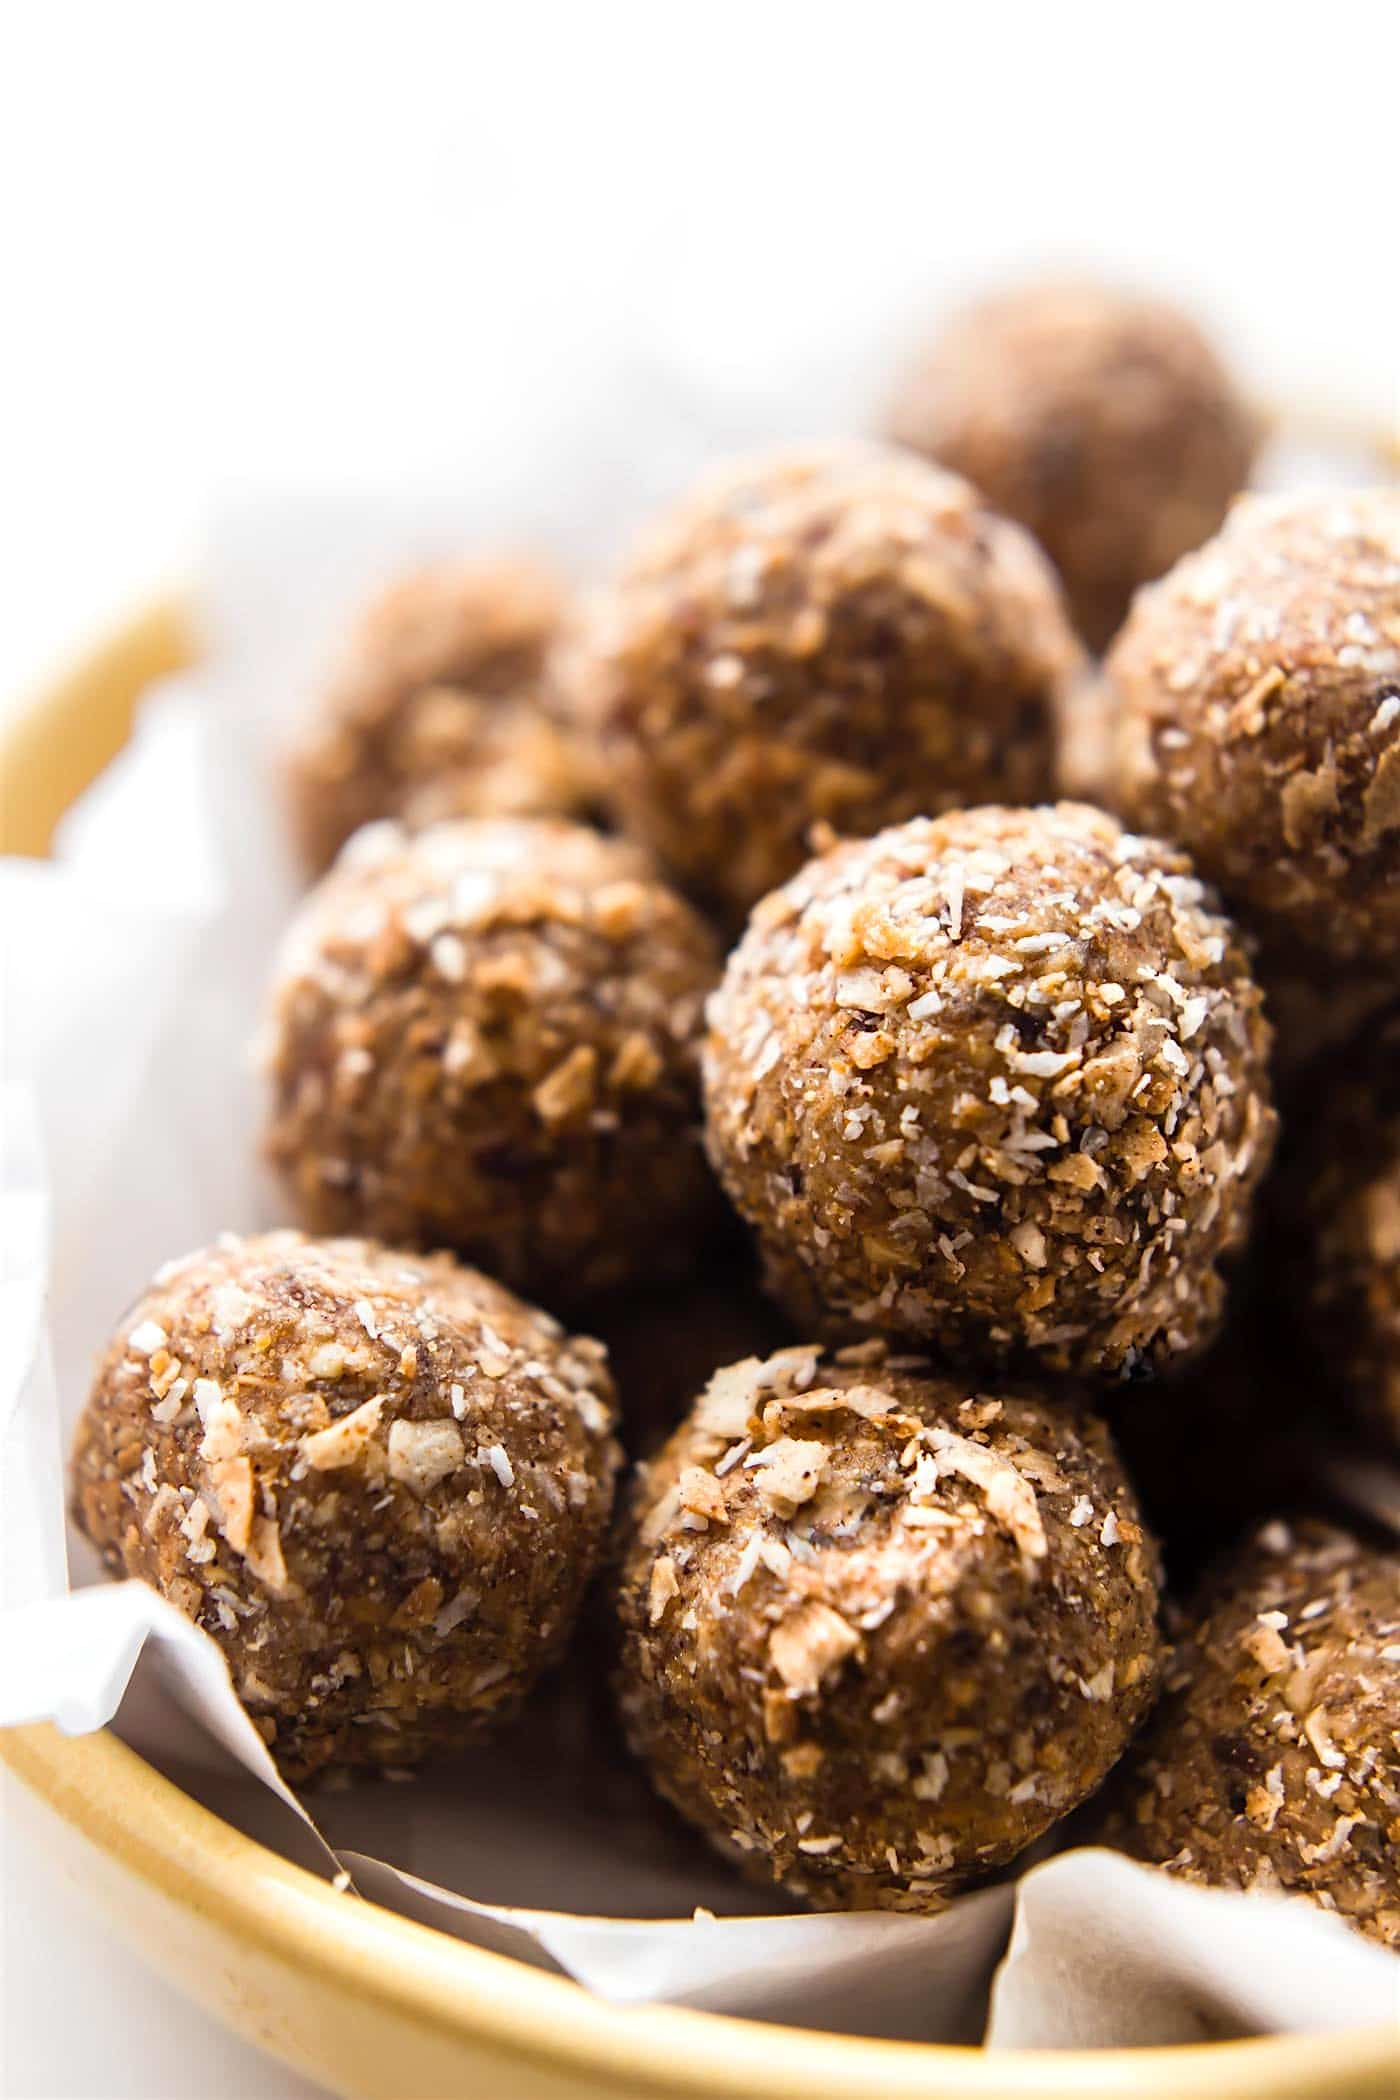 Toasted Coconut Bliss balls ya'll! A sweet and salty snack ball! Oh my! Paleo and Vegan friendly, crunchy, chewy, the perfect treat! Make for yourself or even for holiday festivities! Get the BLISSFUL recipe --> www.cottercrunch.com